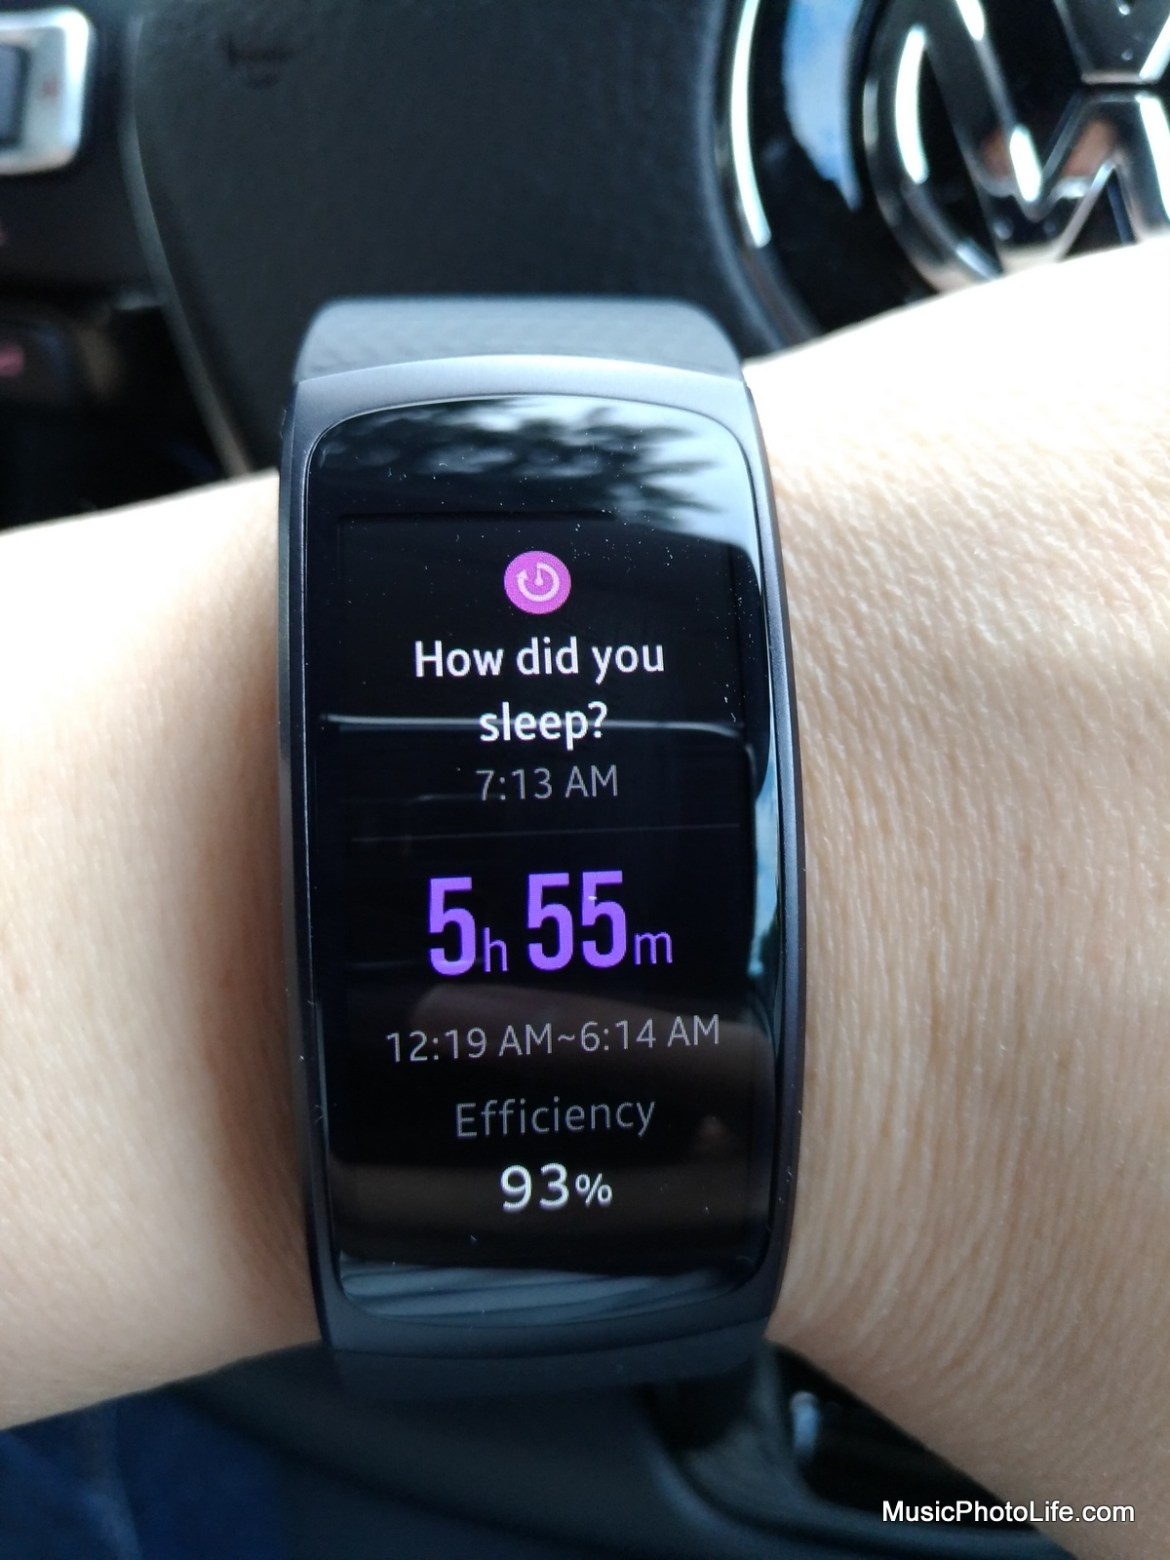 Samsung Gear Fit2 displays sleep quality